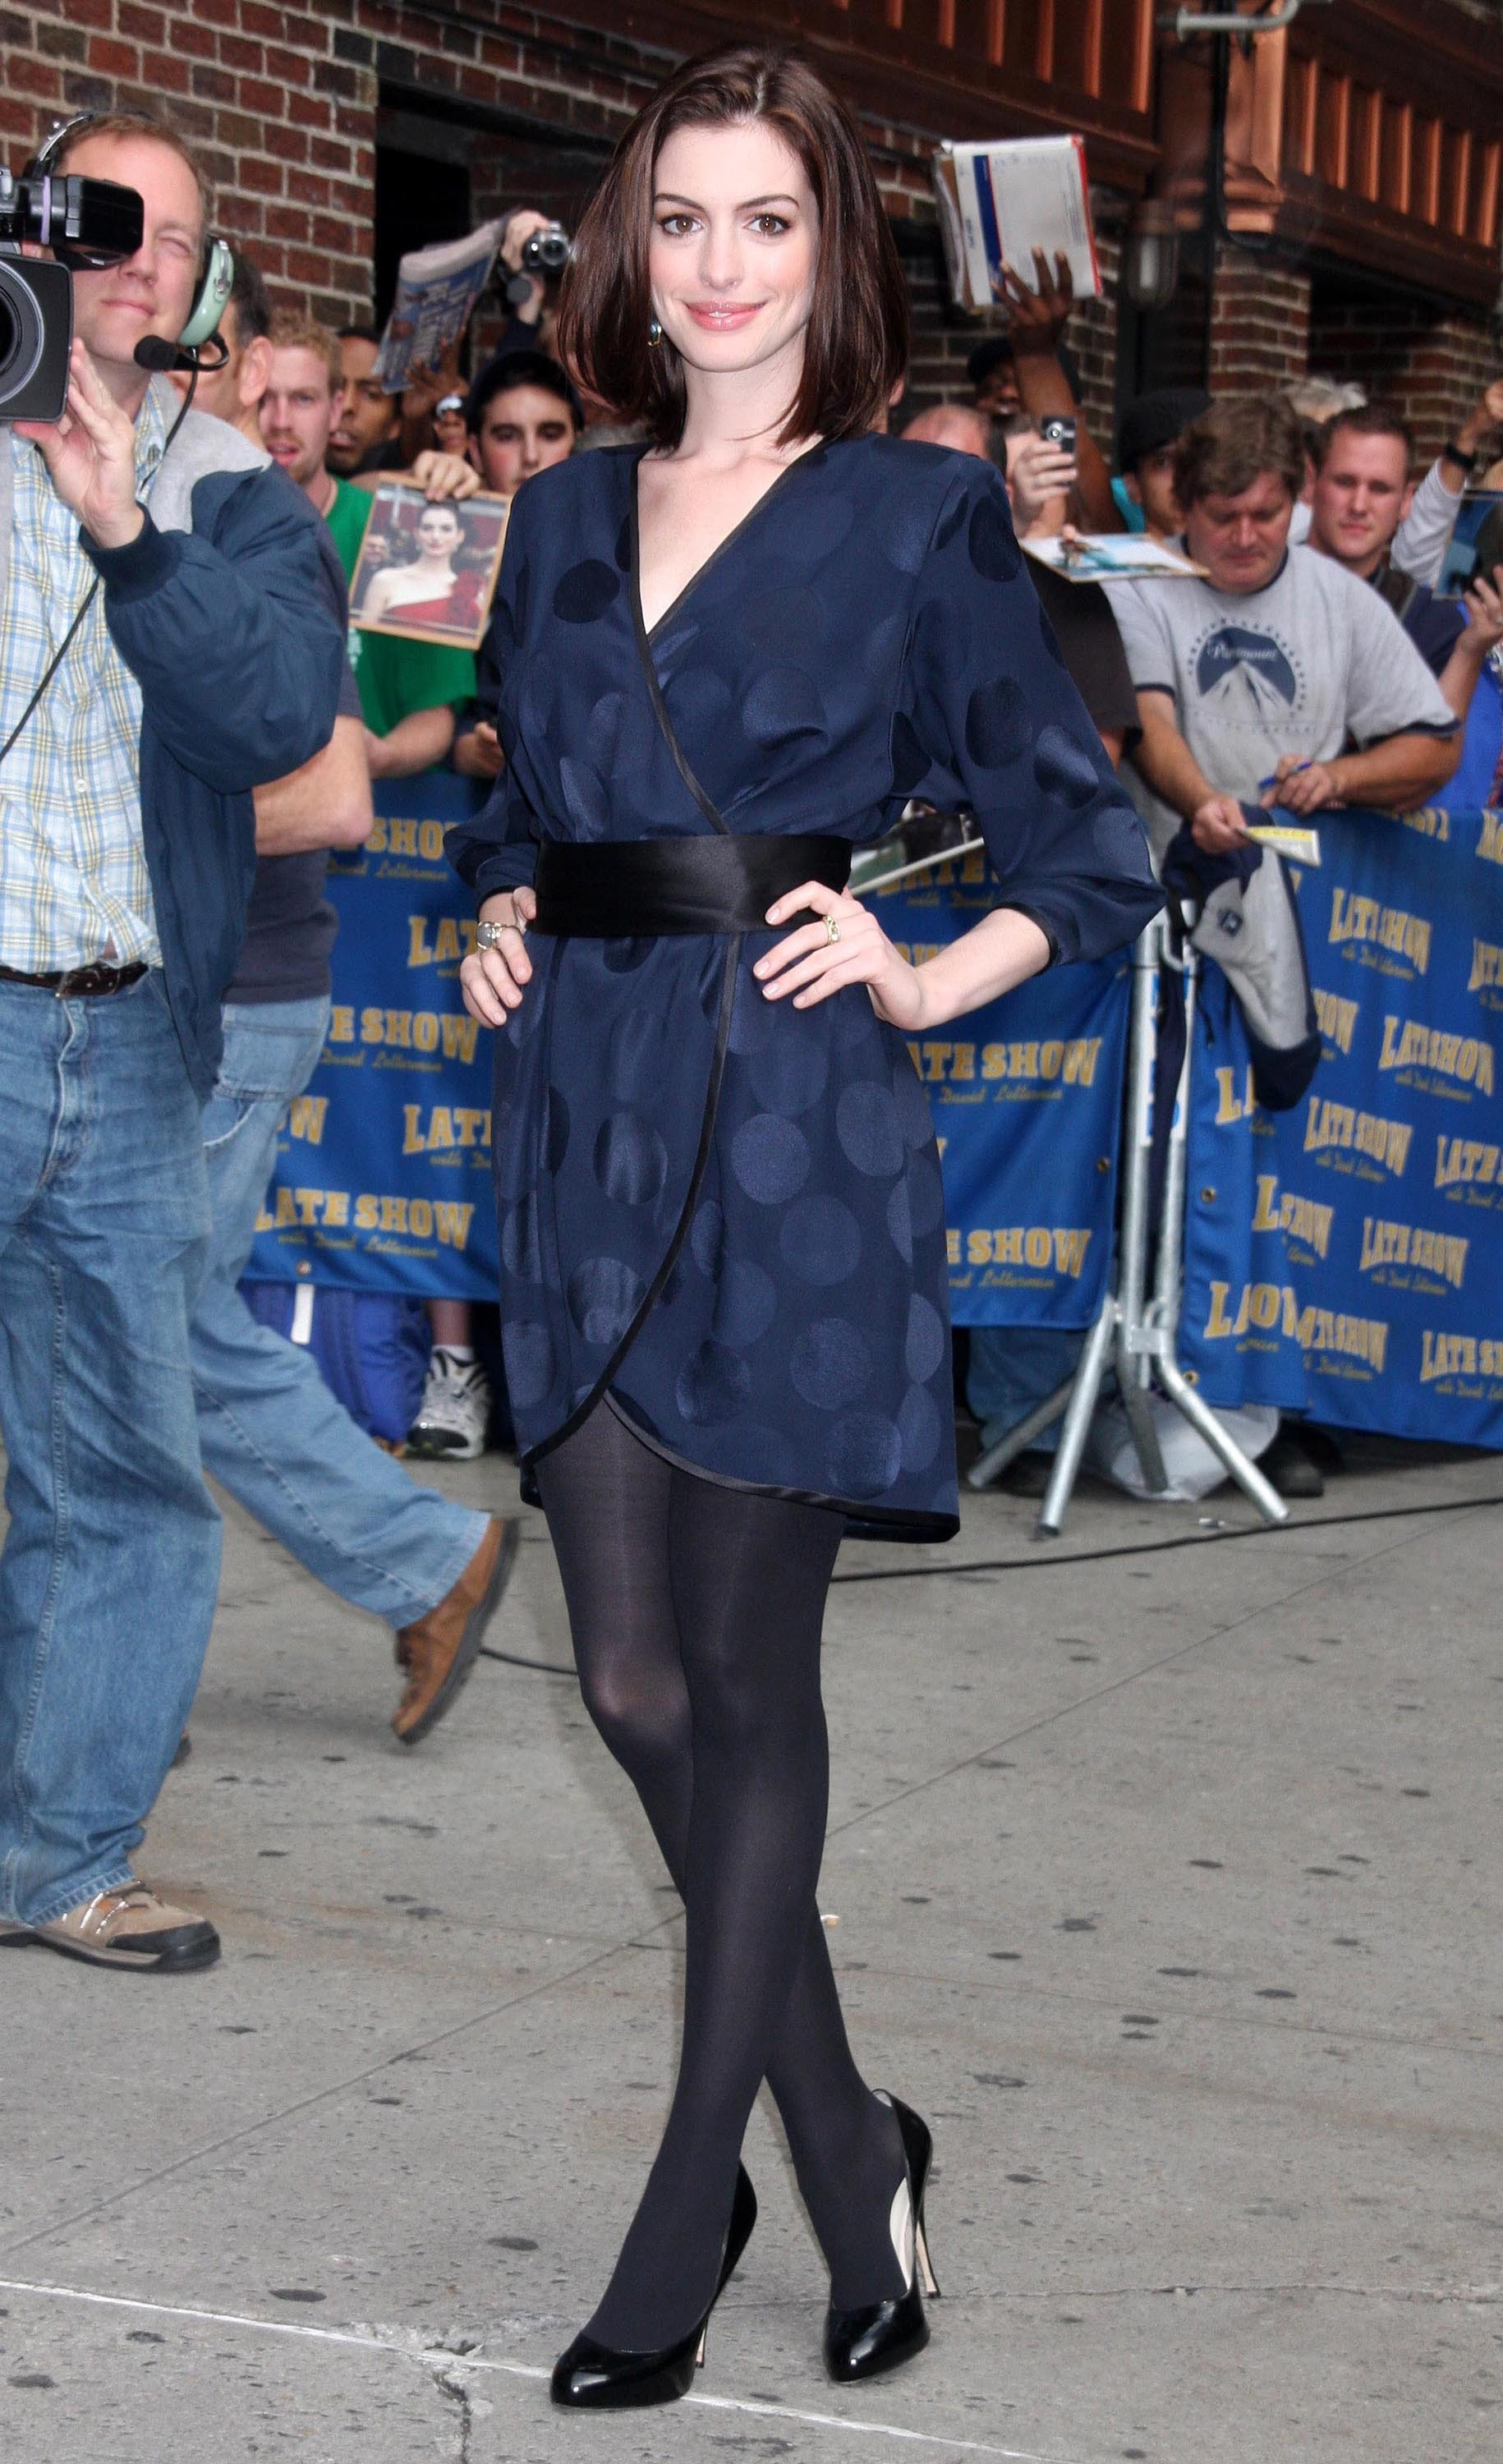 46675_Anne_Hathaway_2008-09-30_-_visits_the_Late_Show_with_David_Letterman_474_122_820lo.jpg